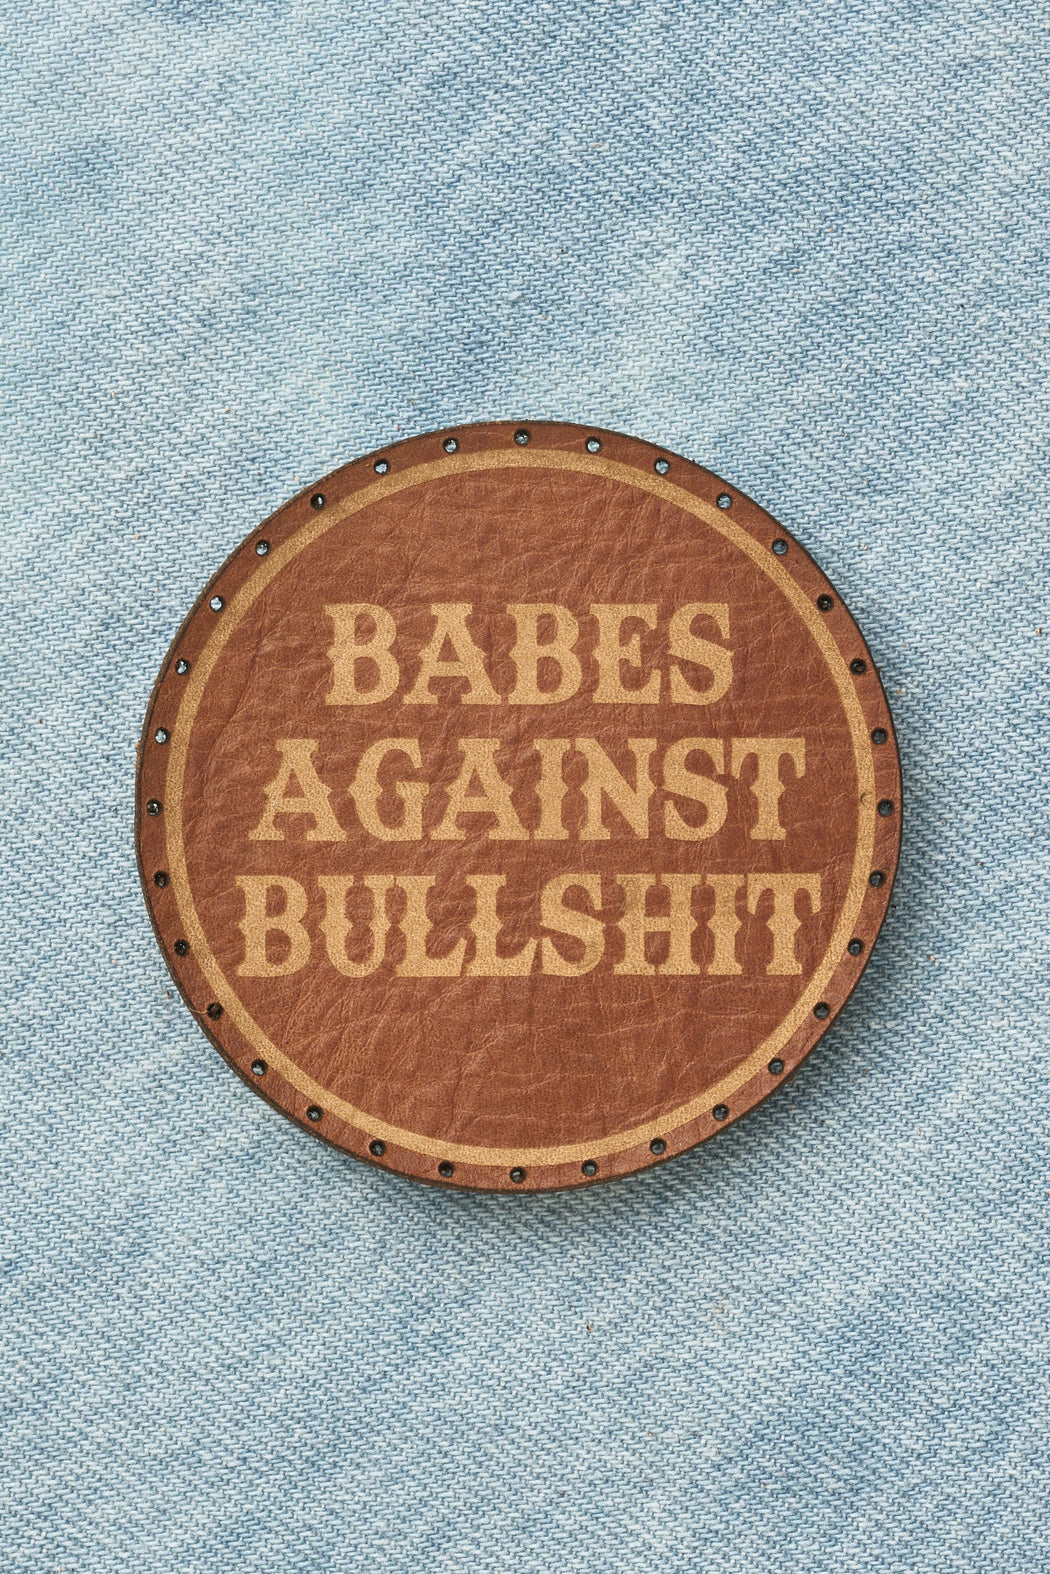 Babes Against Bullshit Patch